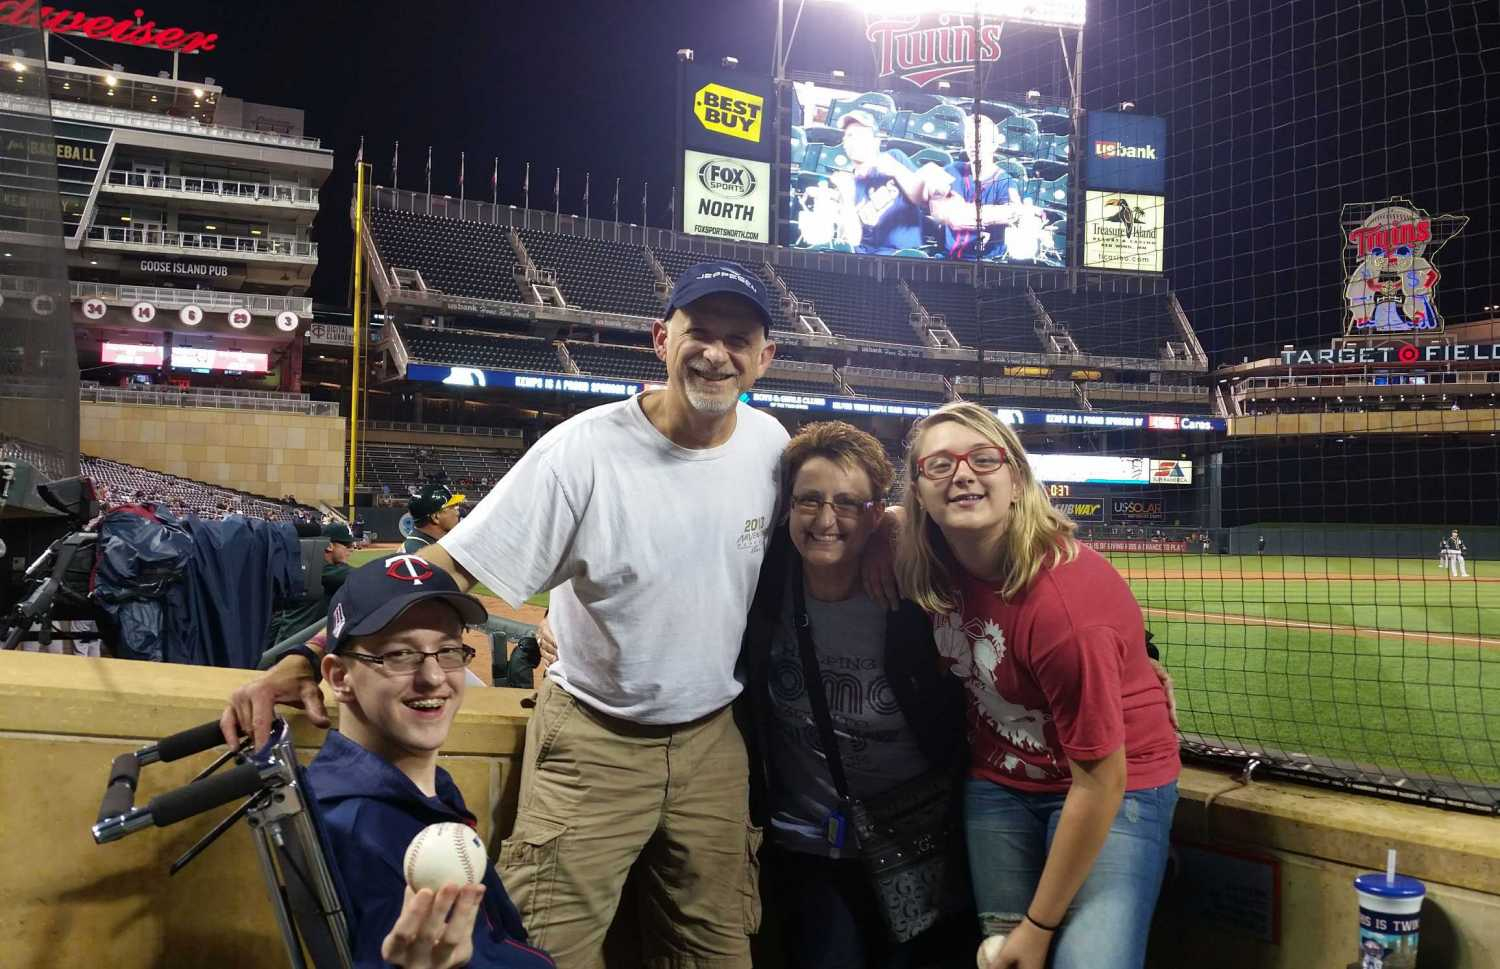 Connor and his family at his first Twins game.